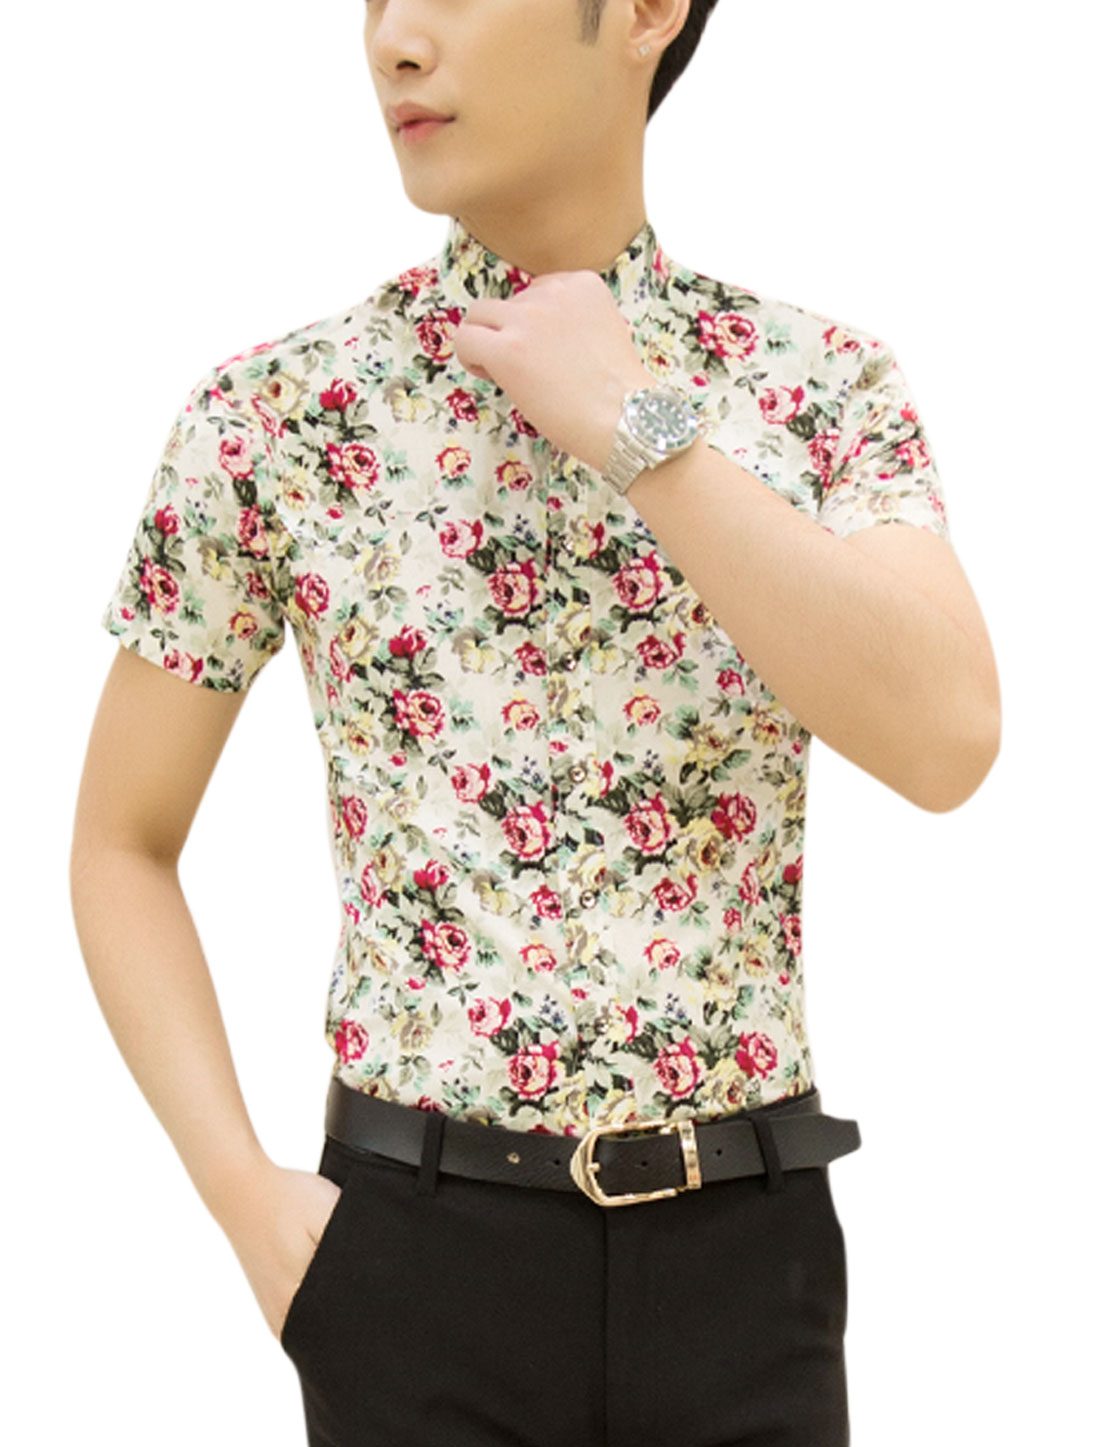 Men Point Collar Flower Prints Round Hem Casual Shirts Beige Fuchsia M